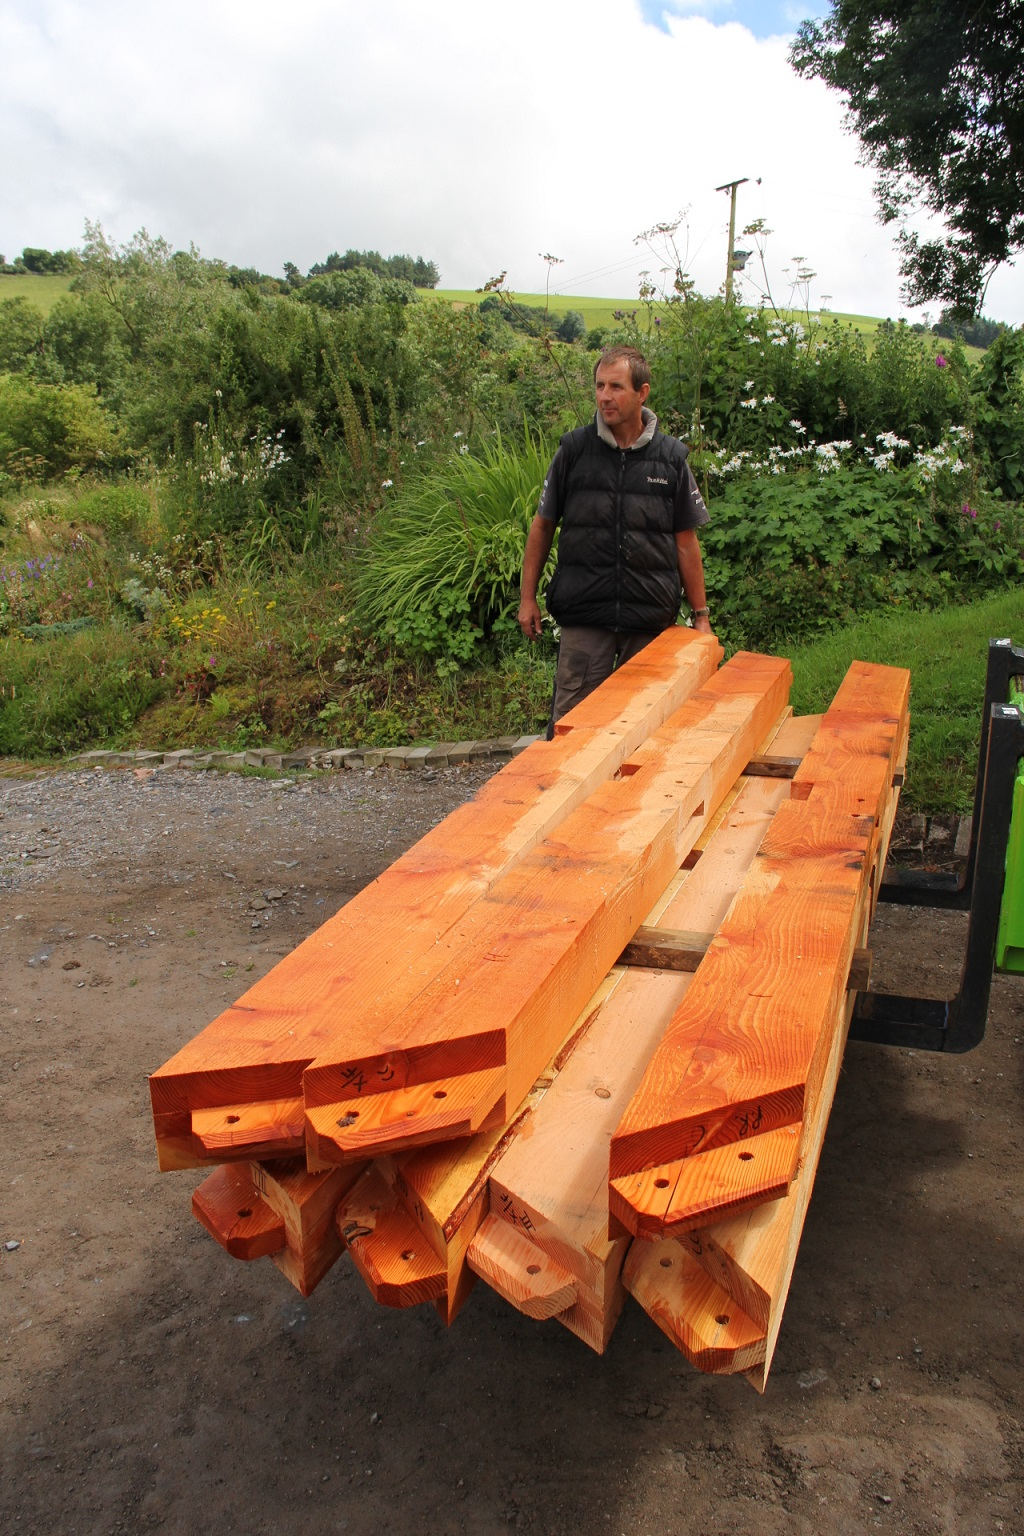 Douglas fir for timberframe house